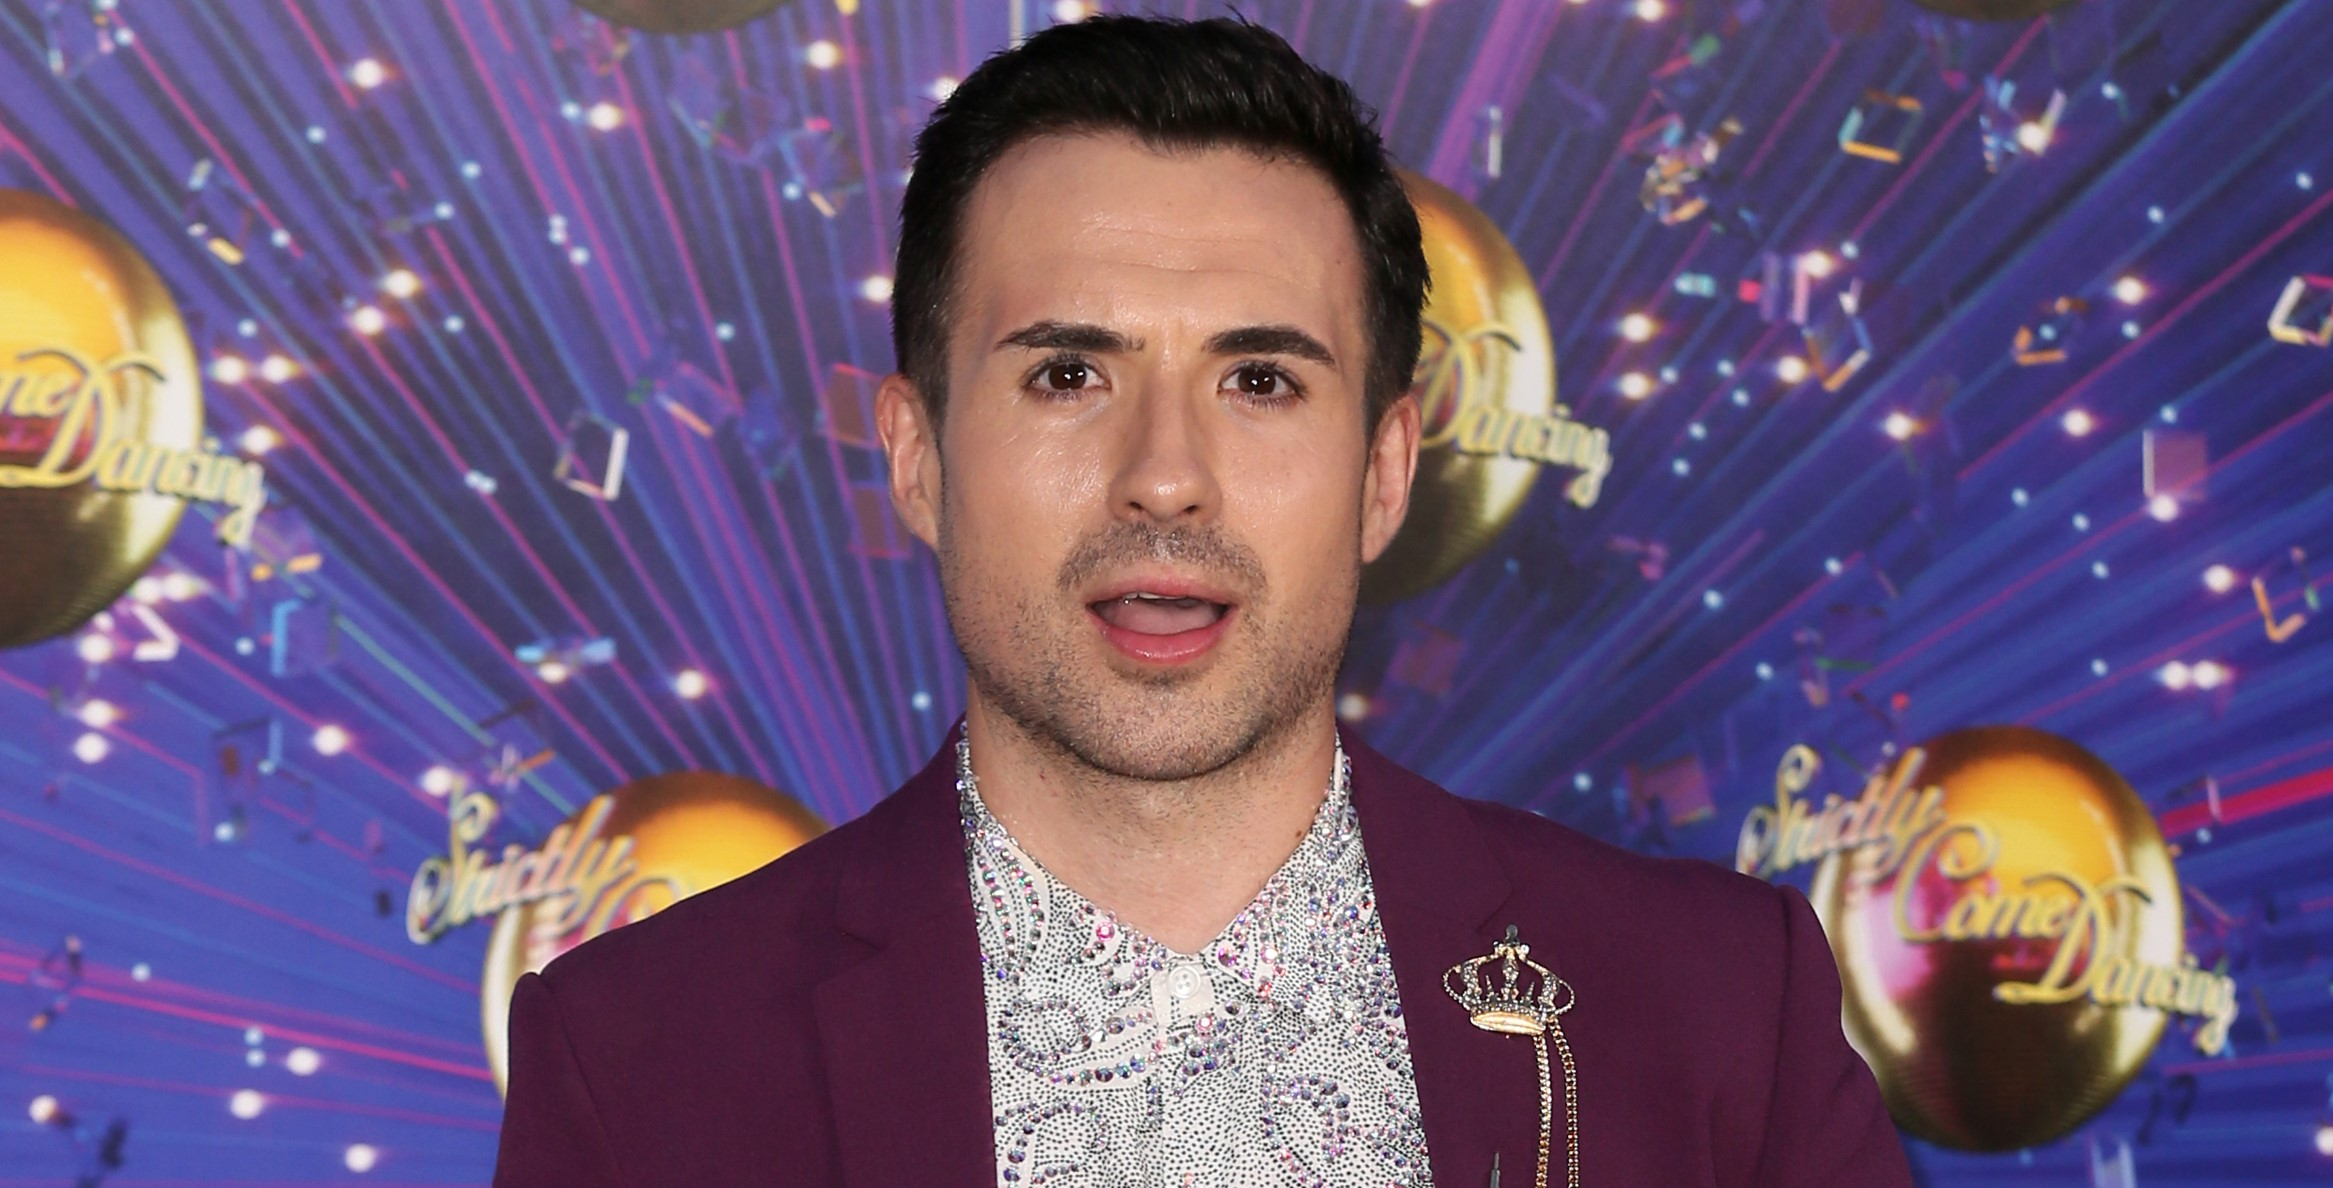 Strictly bosses 'WON'T replace Will Bayley after he quits due to injury'